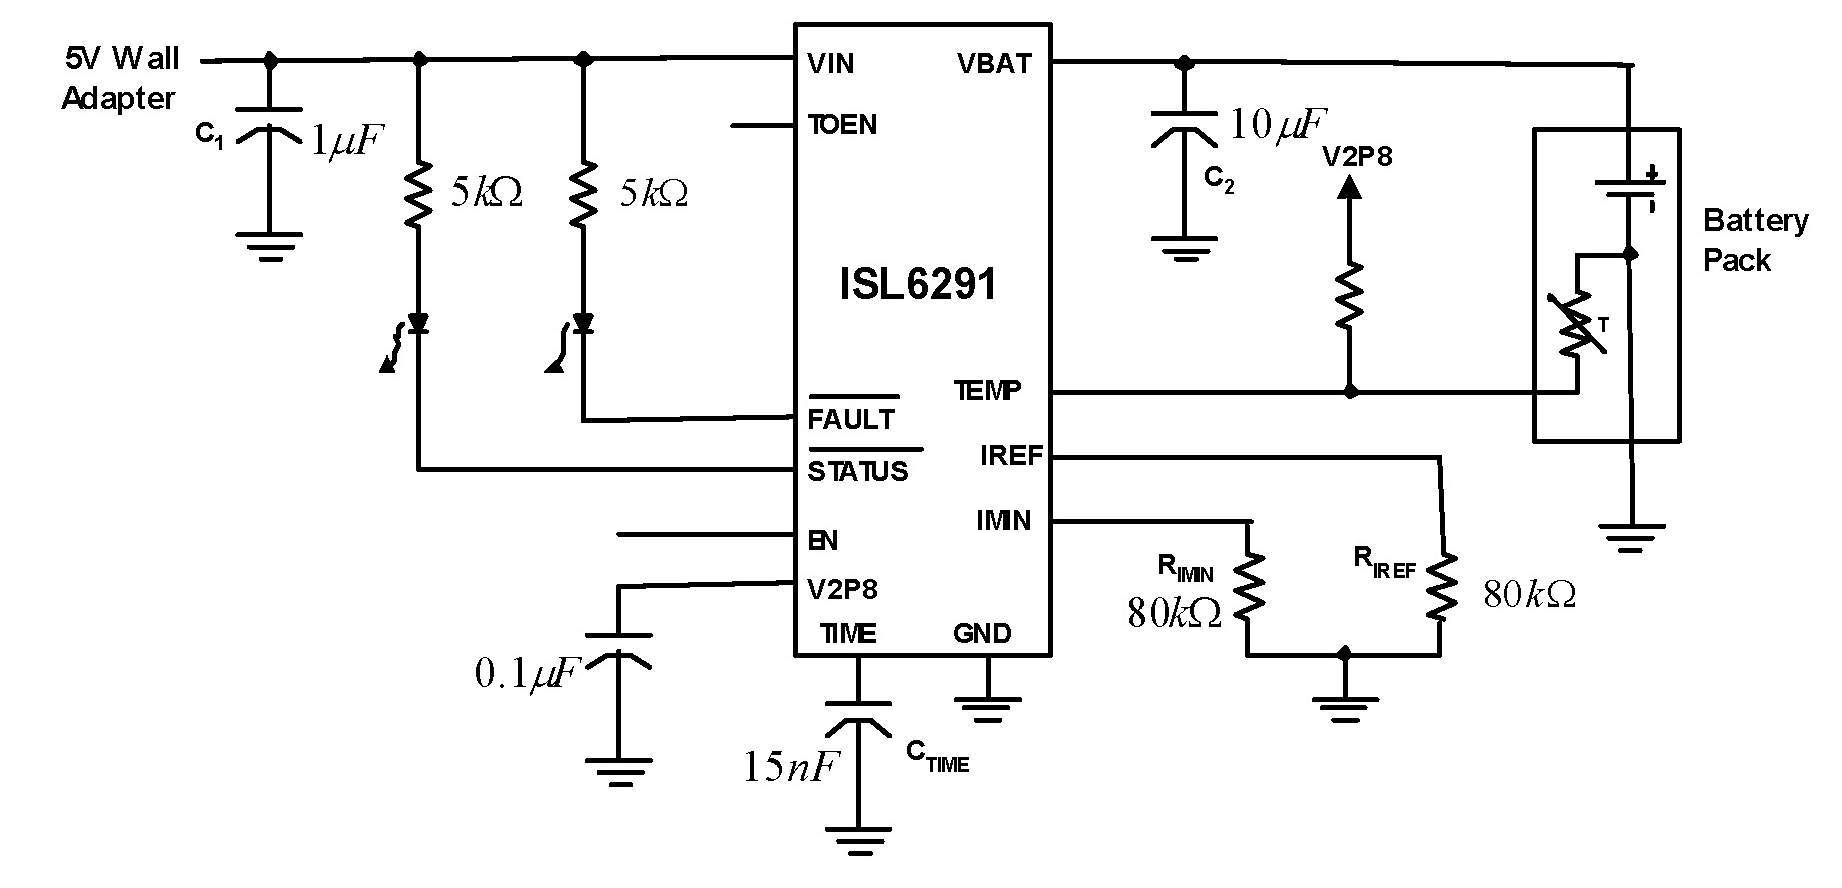 2 cell lithium ion battery charger circuit  may 2013 circuit diagram  lithium ion battery